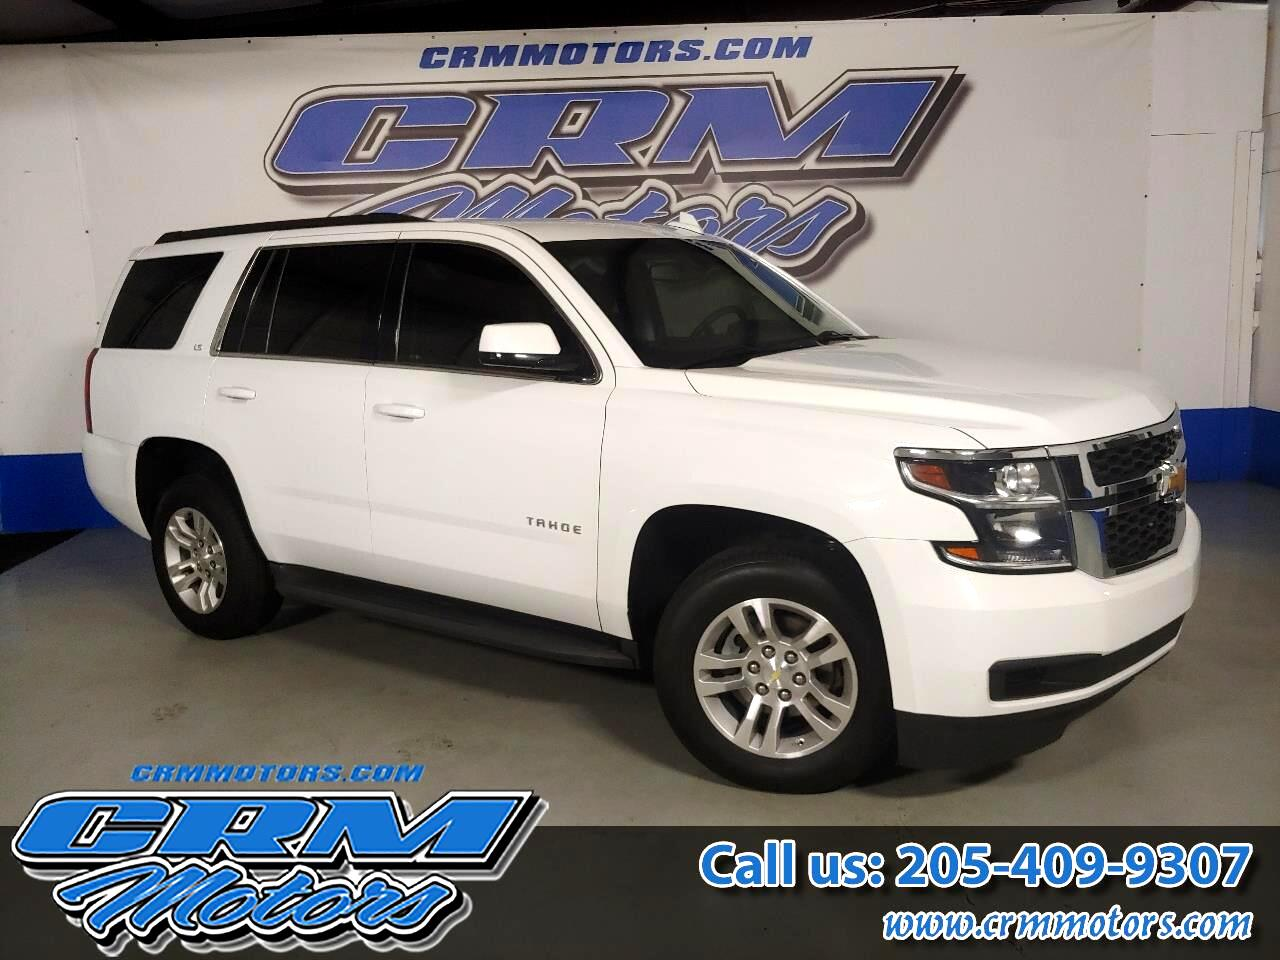 Chevrolet Tahoe 2WD 4dr LS 2016